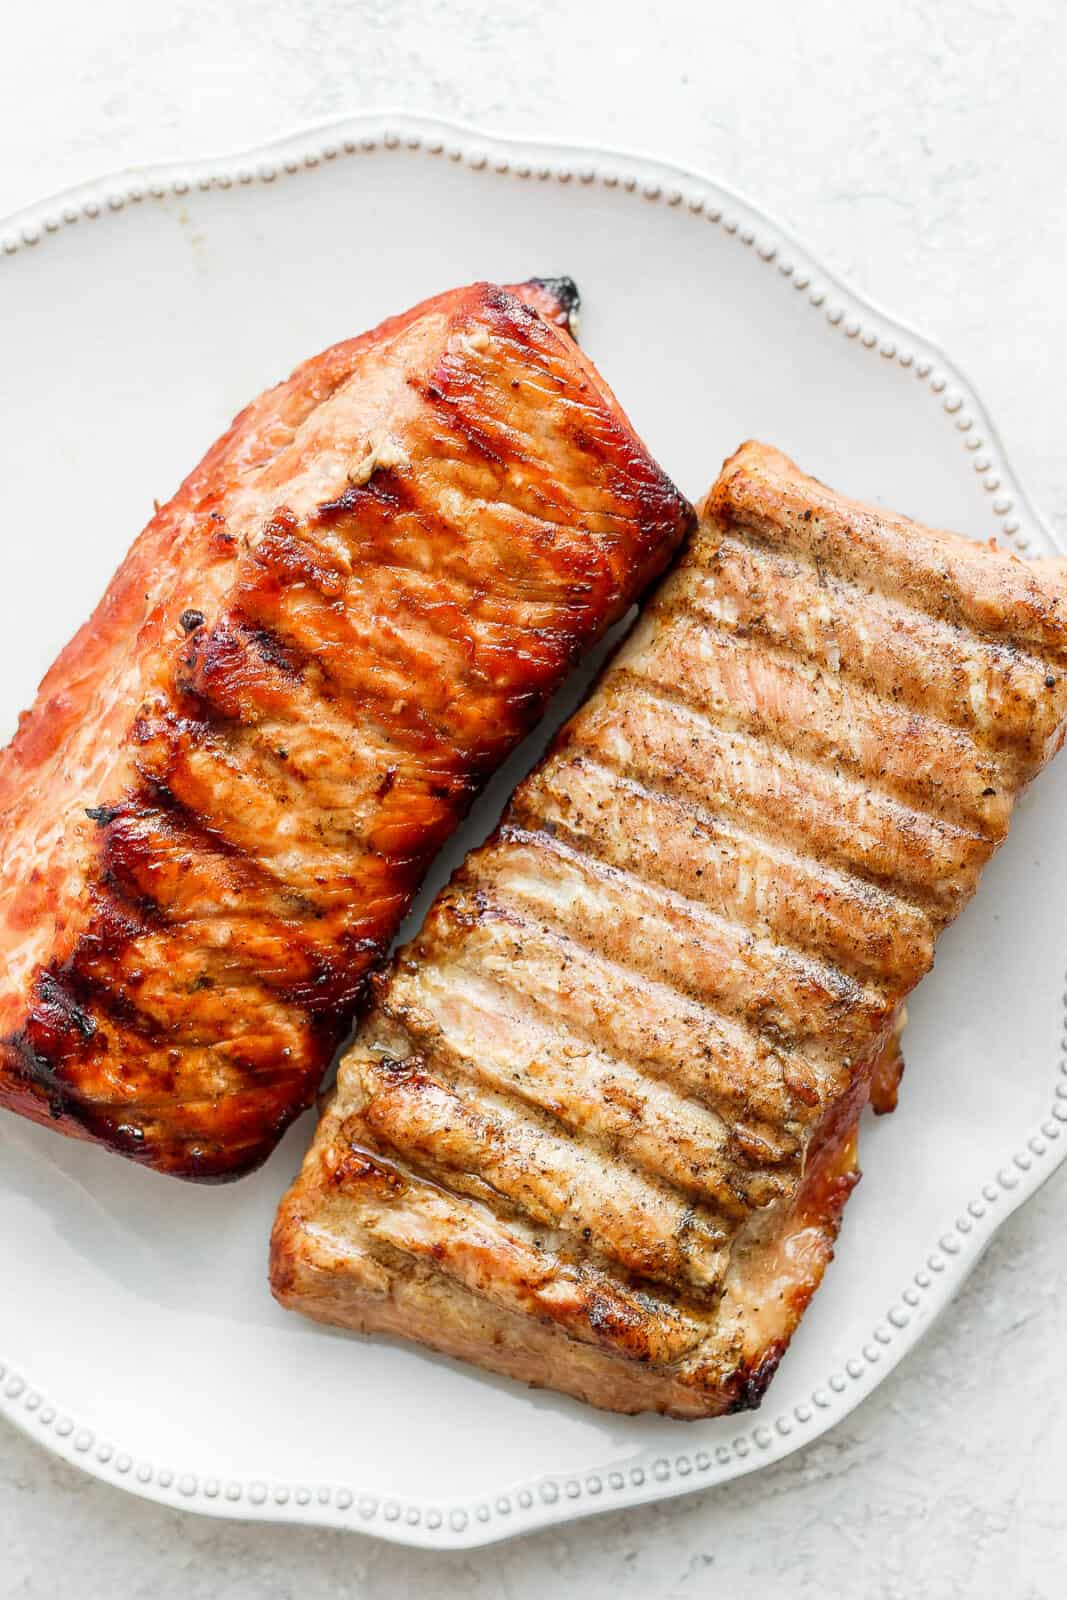 Two smoked pork loins on a plate.